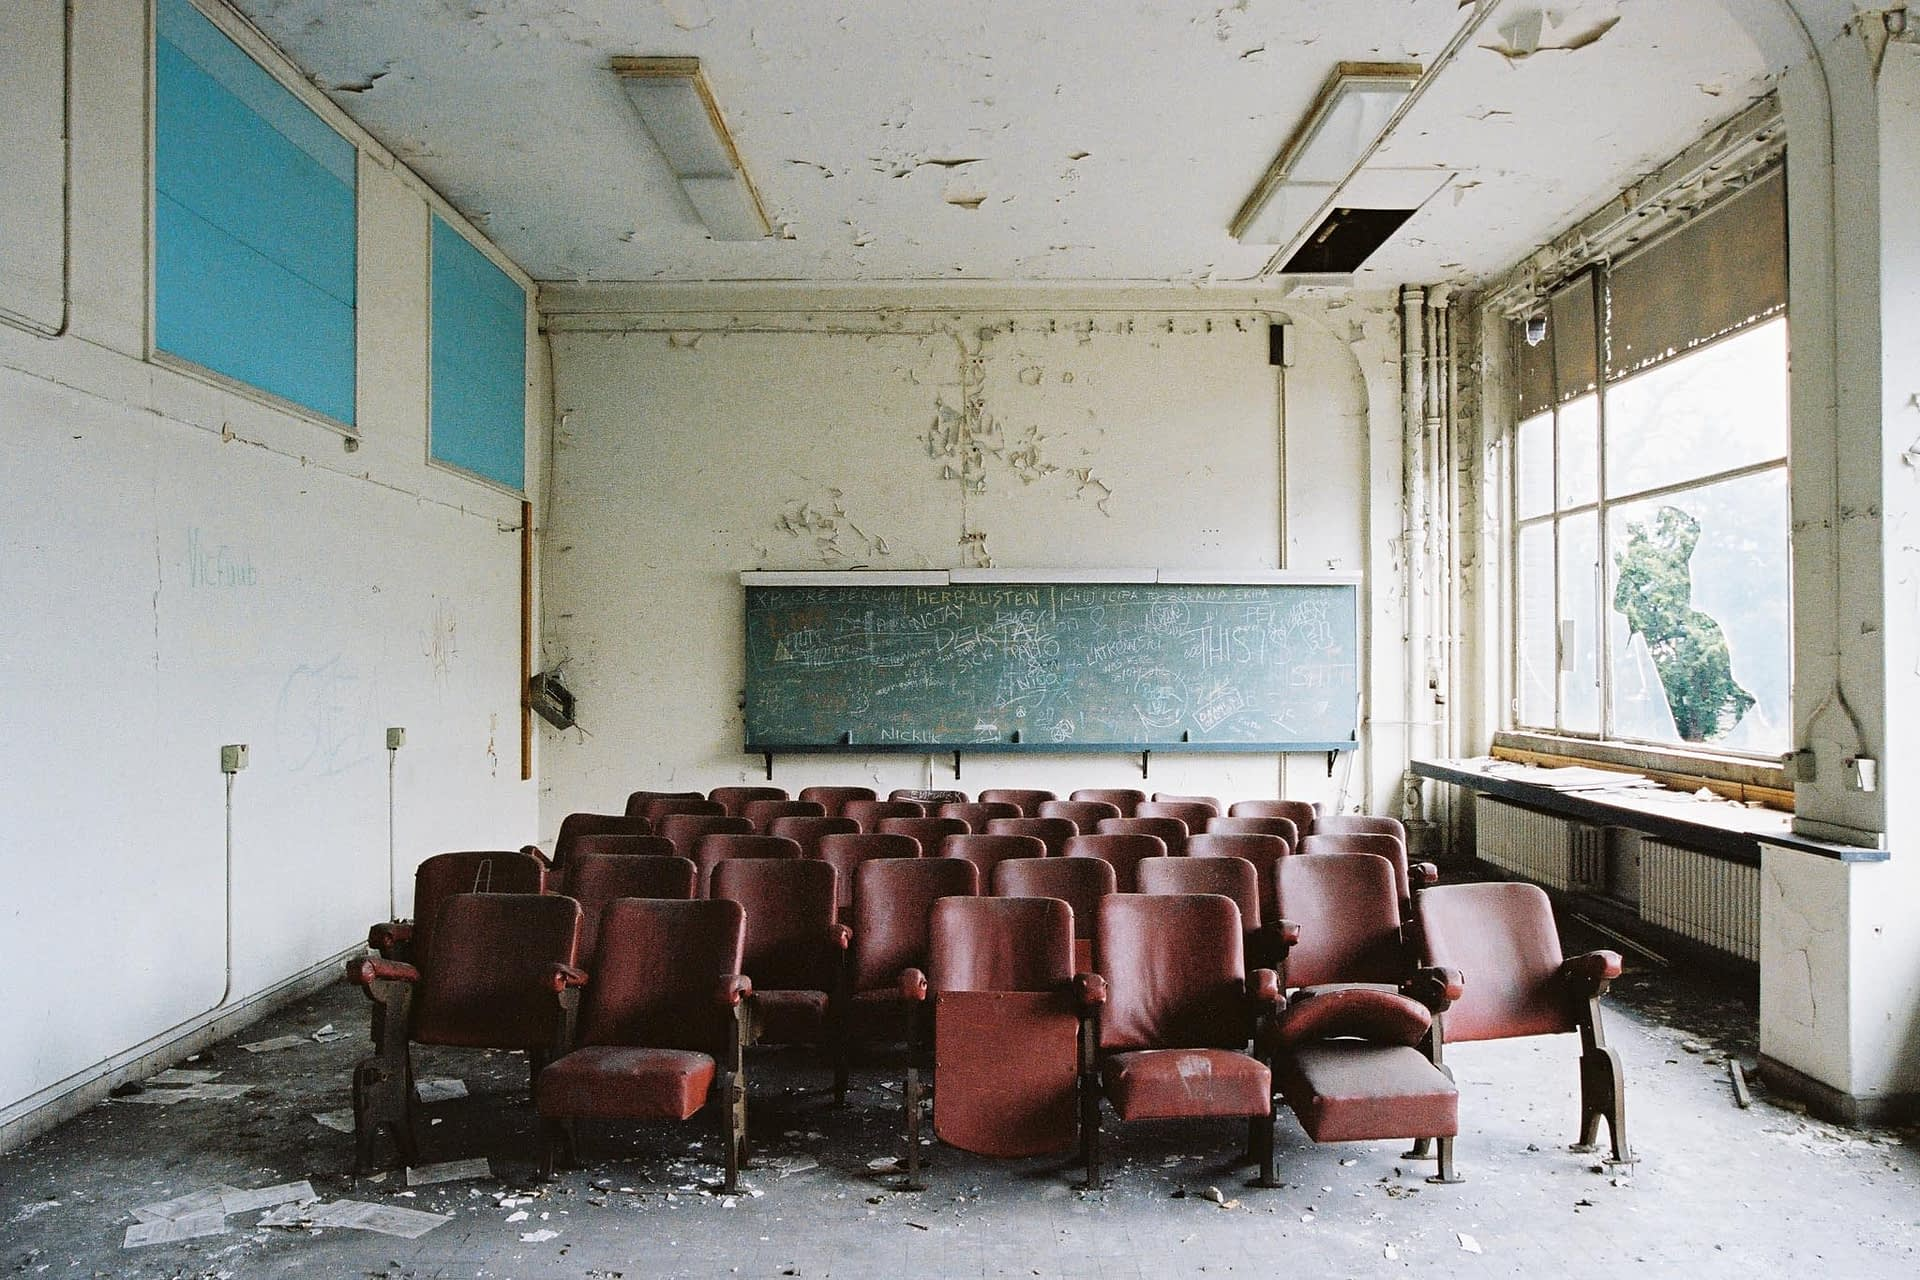 The lost university abandoned in Belgium 05